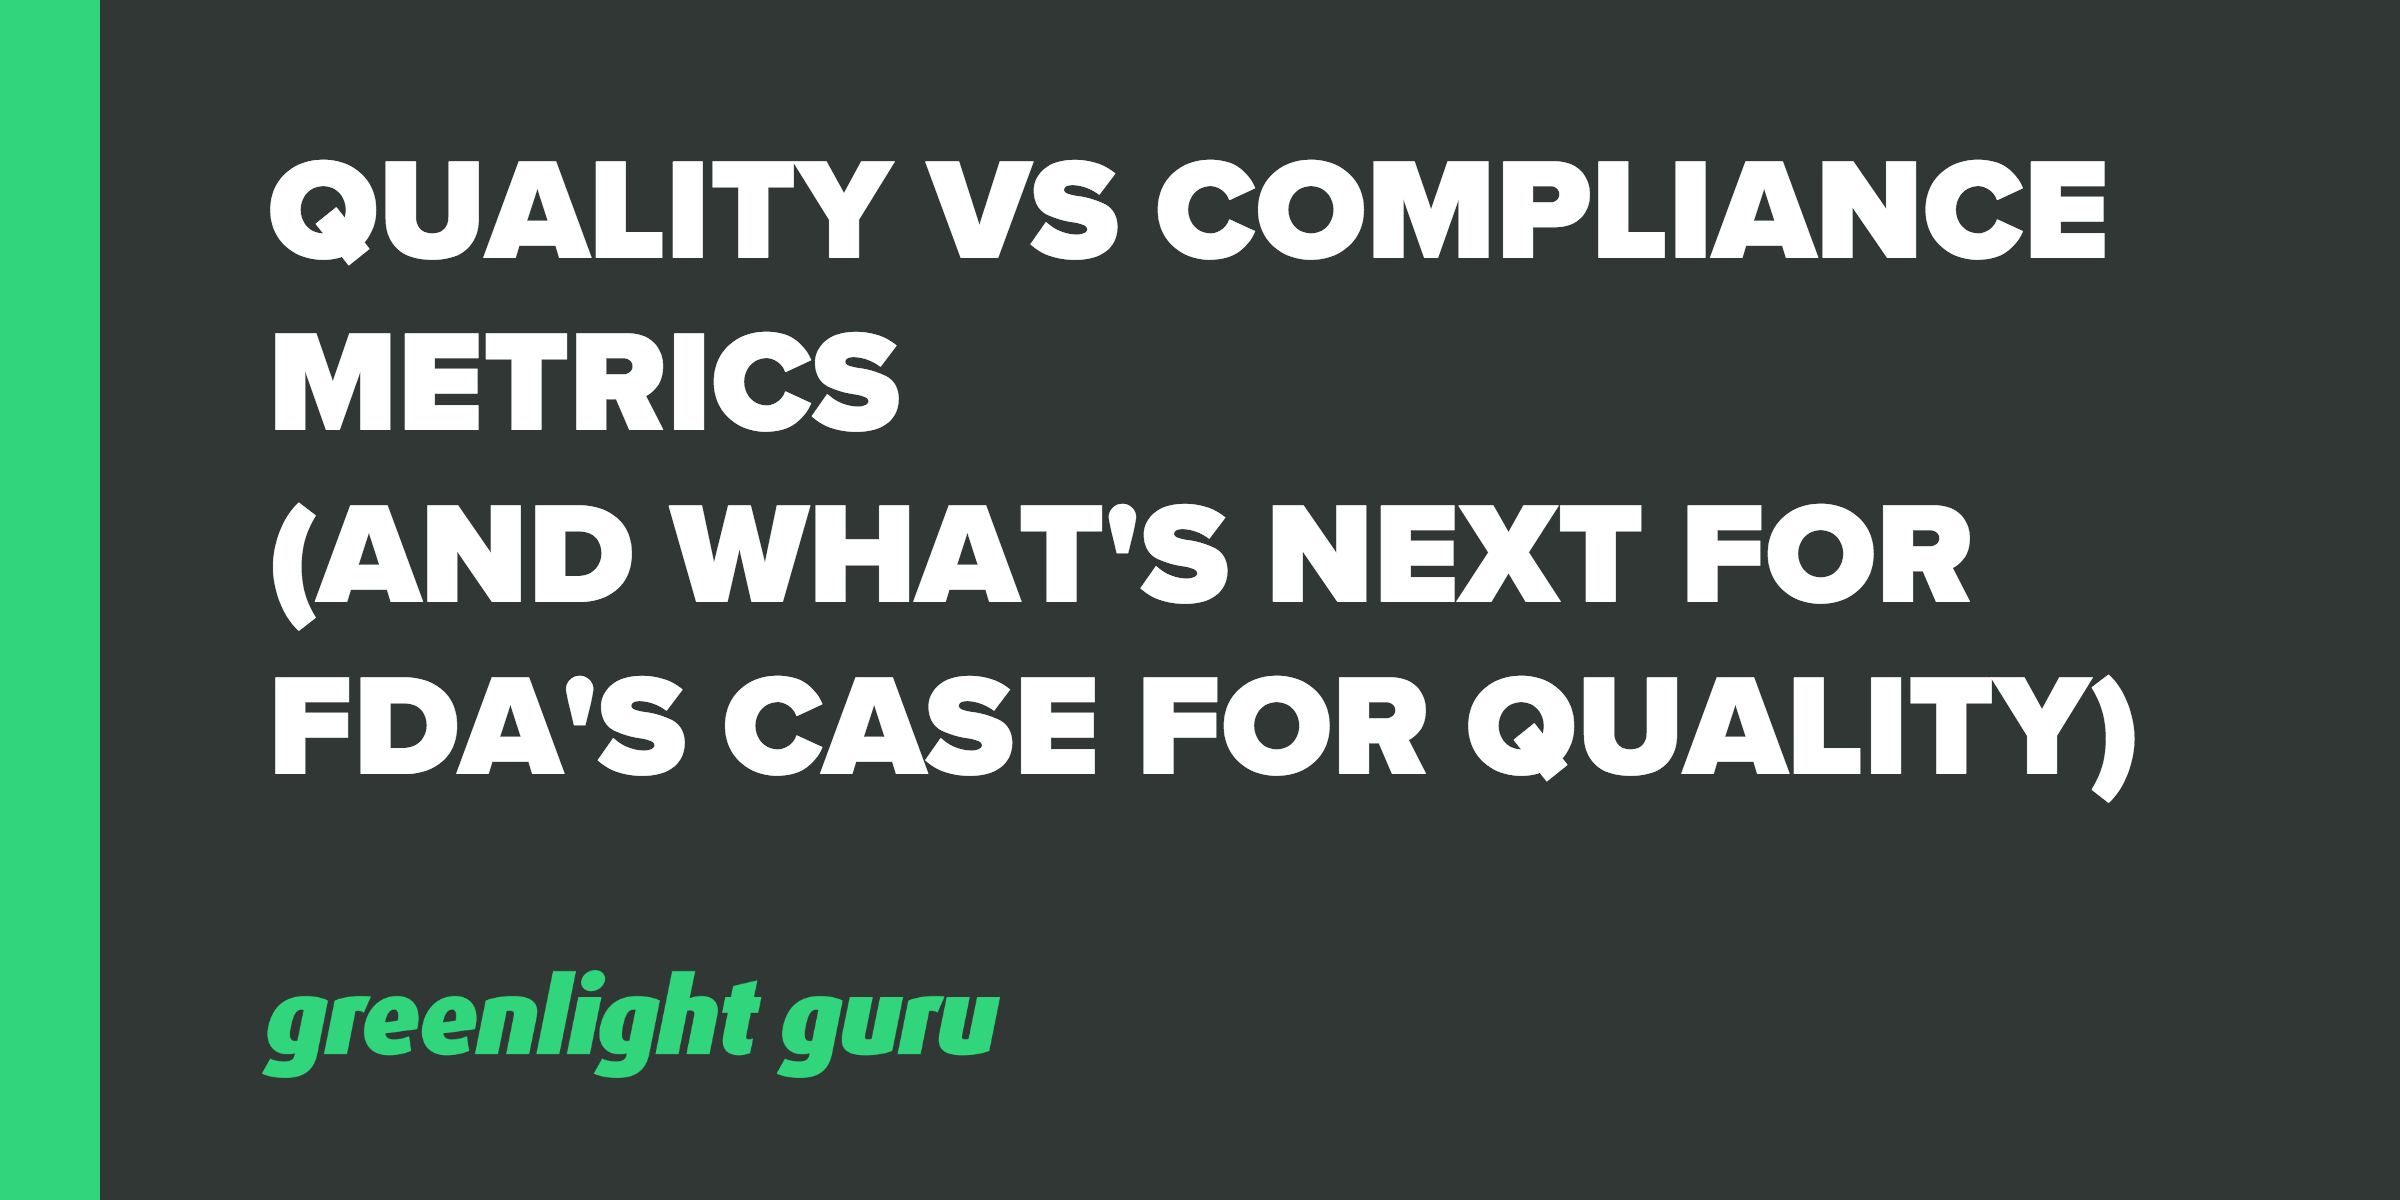 Quality vs Compliance Metrics (and what's next for FDA's Case For Quality) - Featured Image